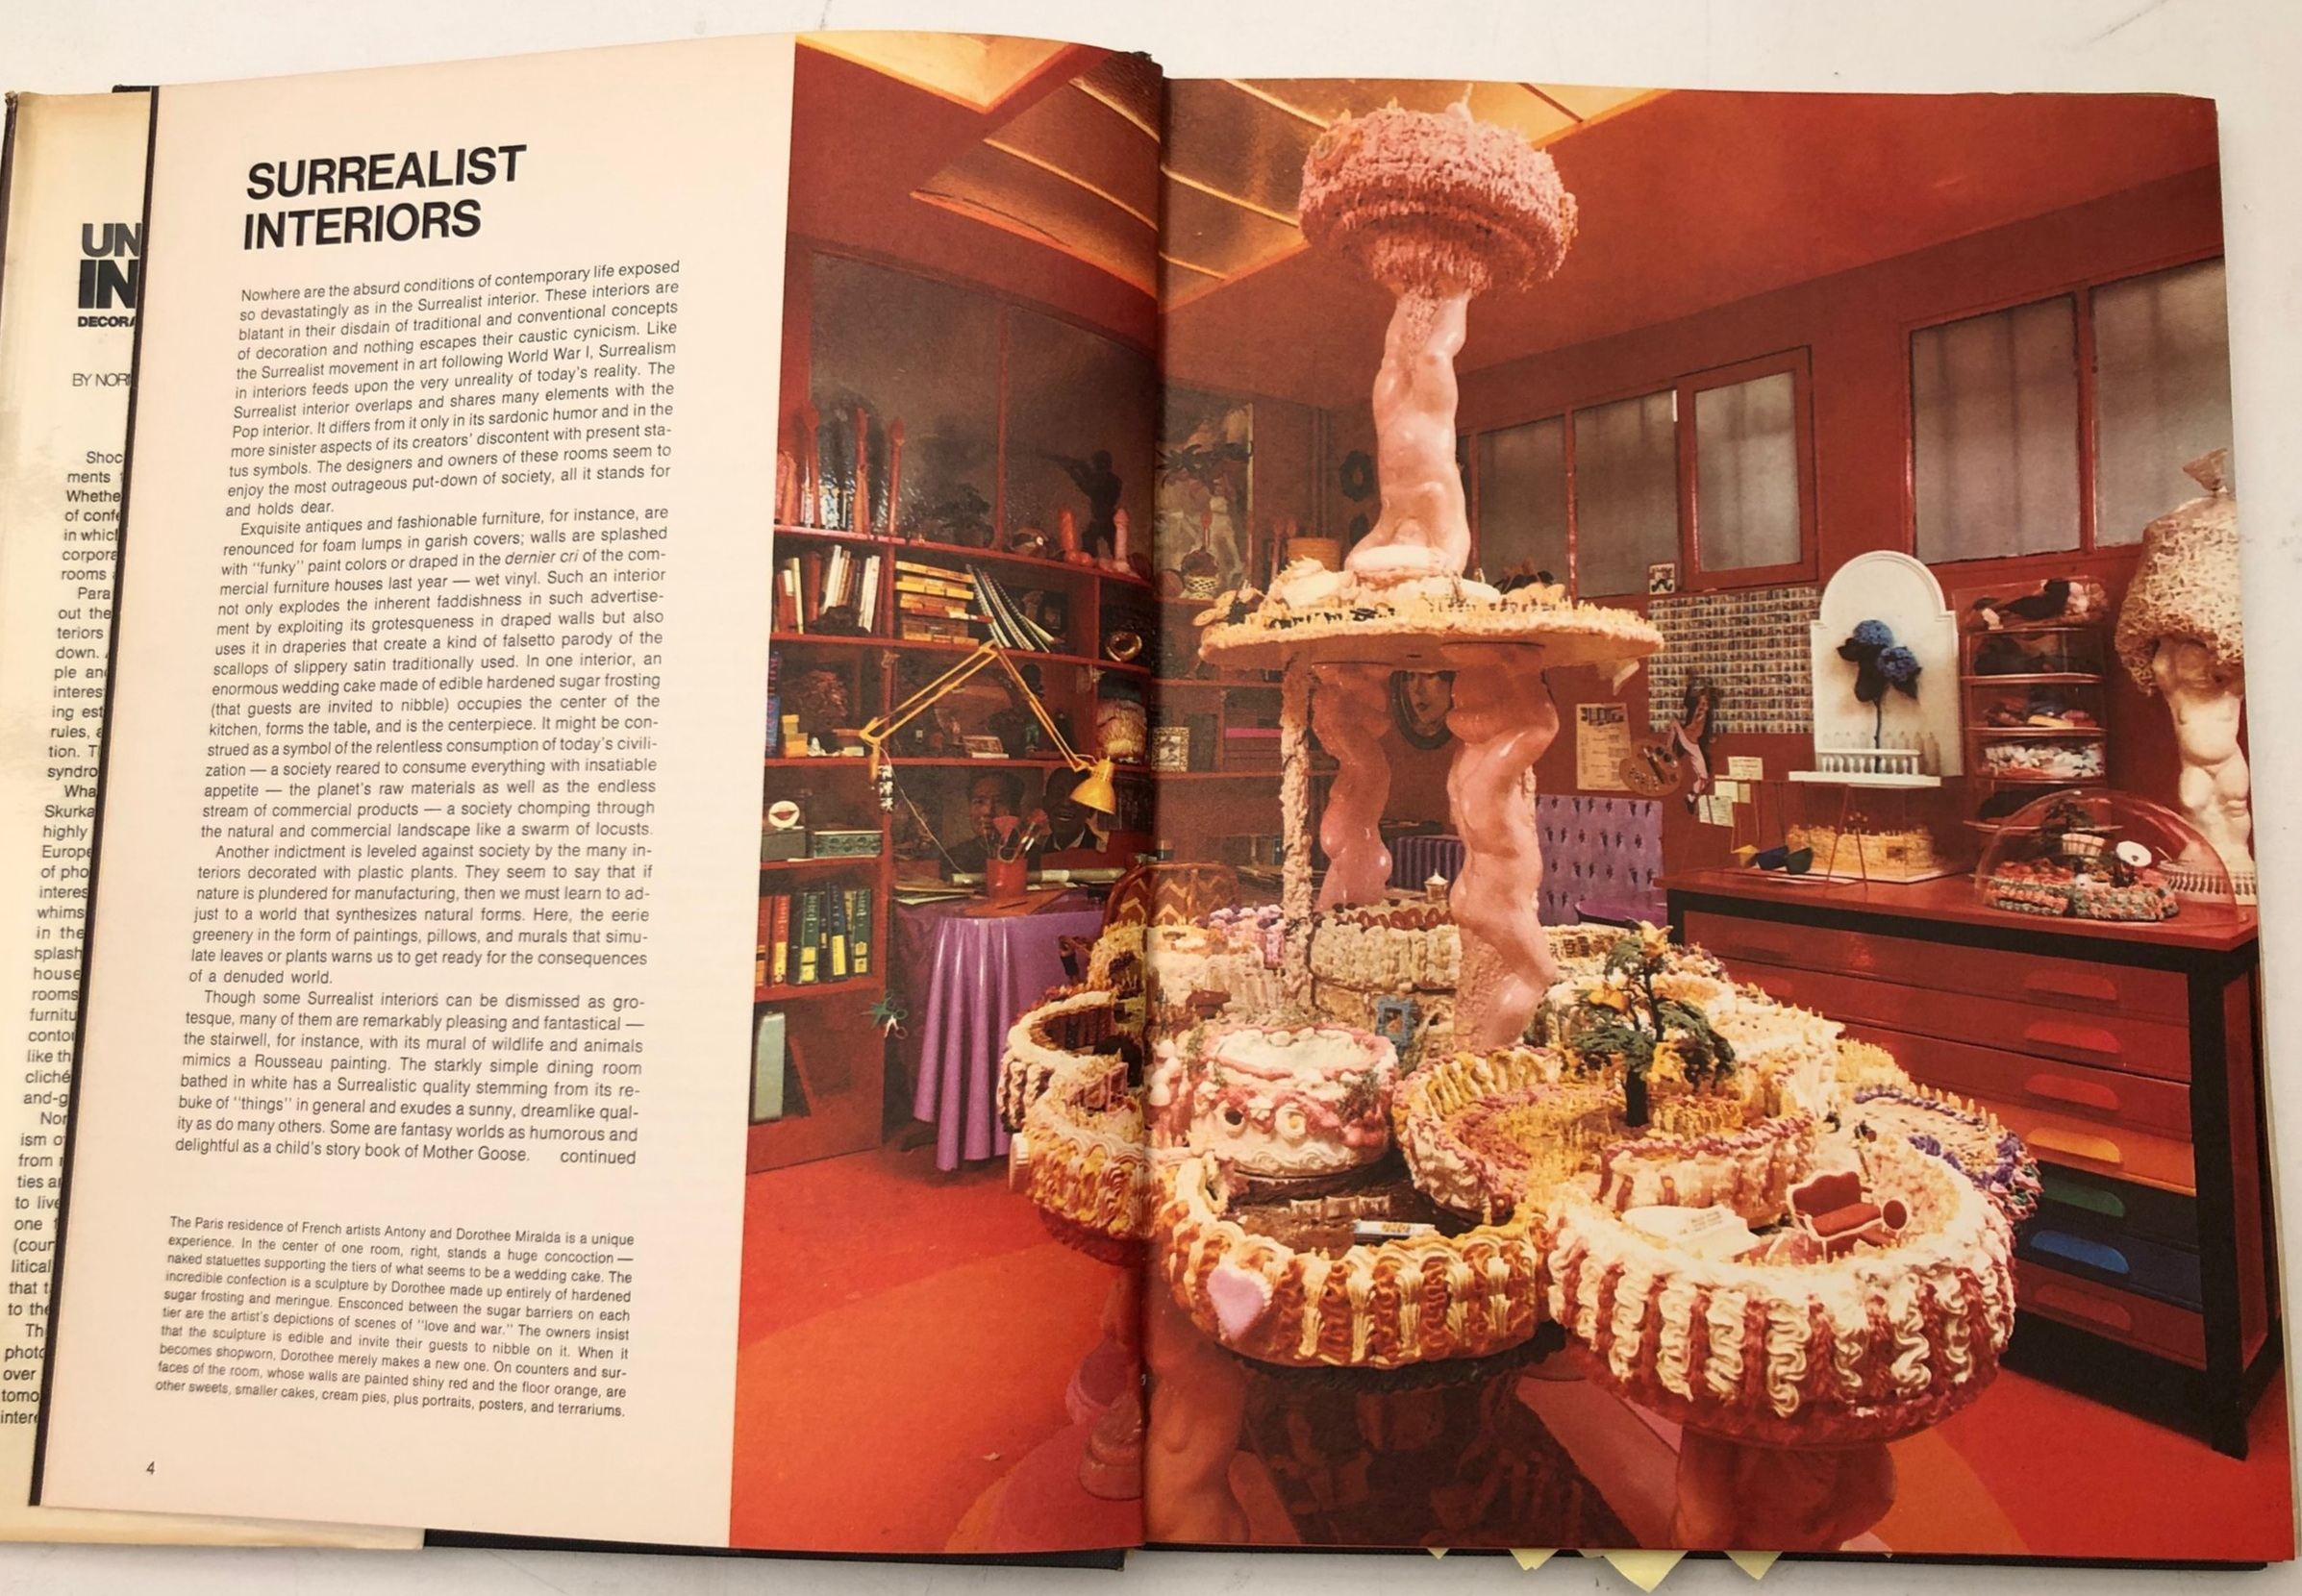 A spread showing the Paris home of Antony and Dorothee Miralda offers treats that are visual (and possibly edible)